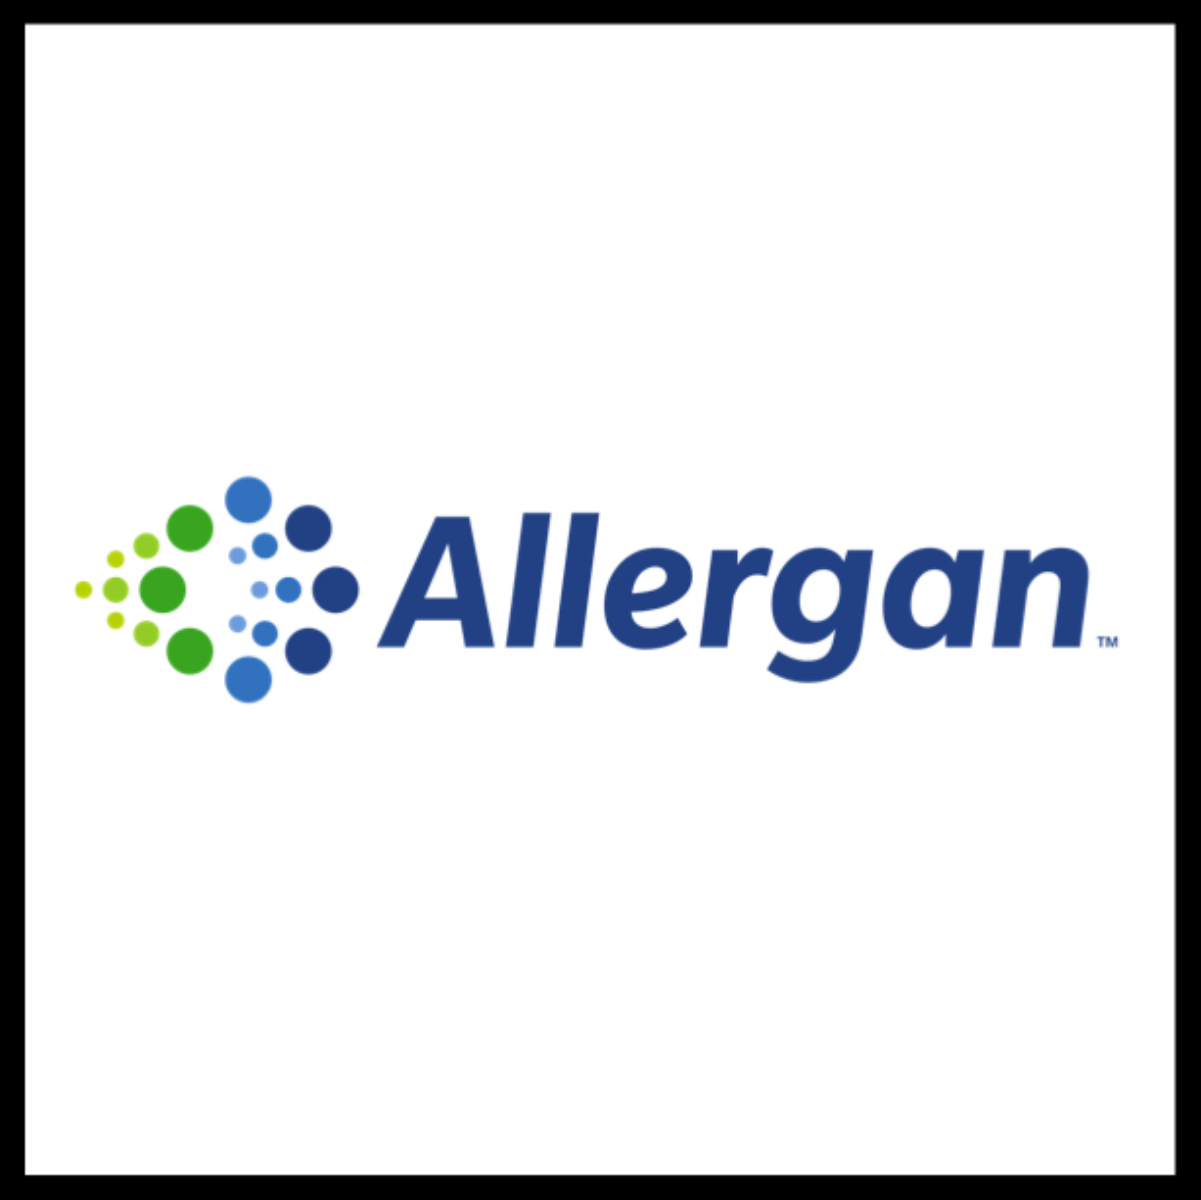 Allergan   Brand positioning and identity for regenerative medicine product portfolio.